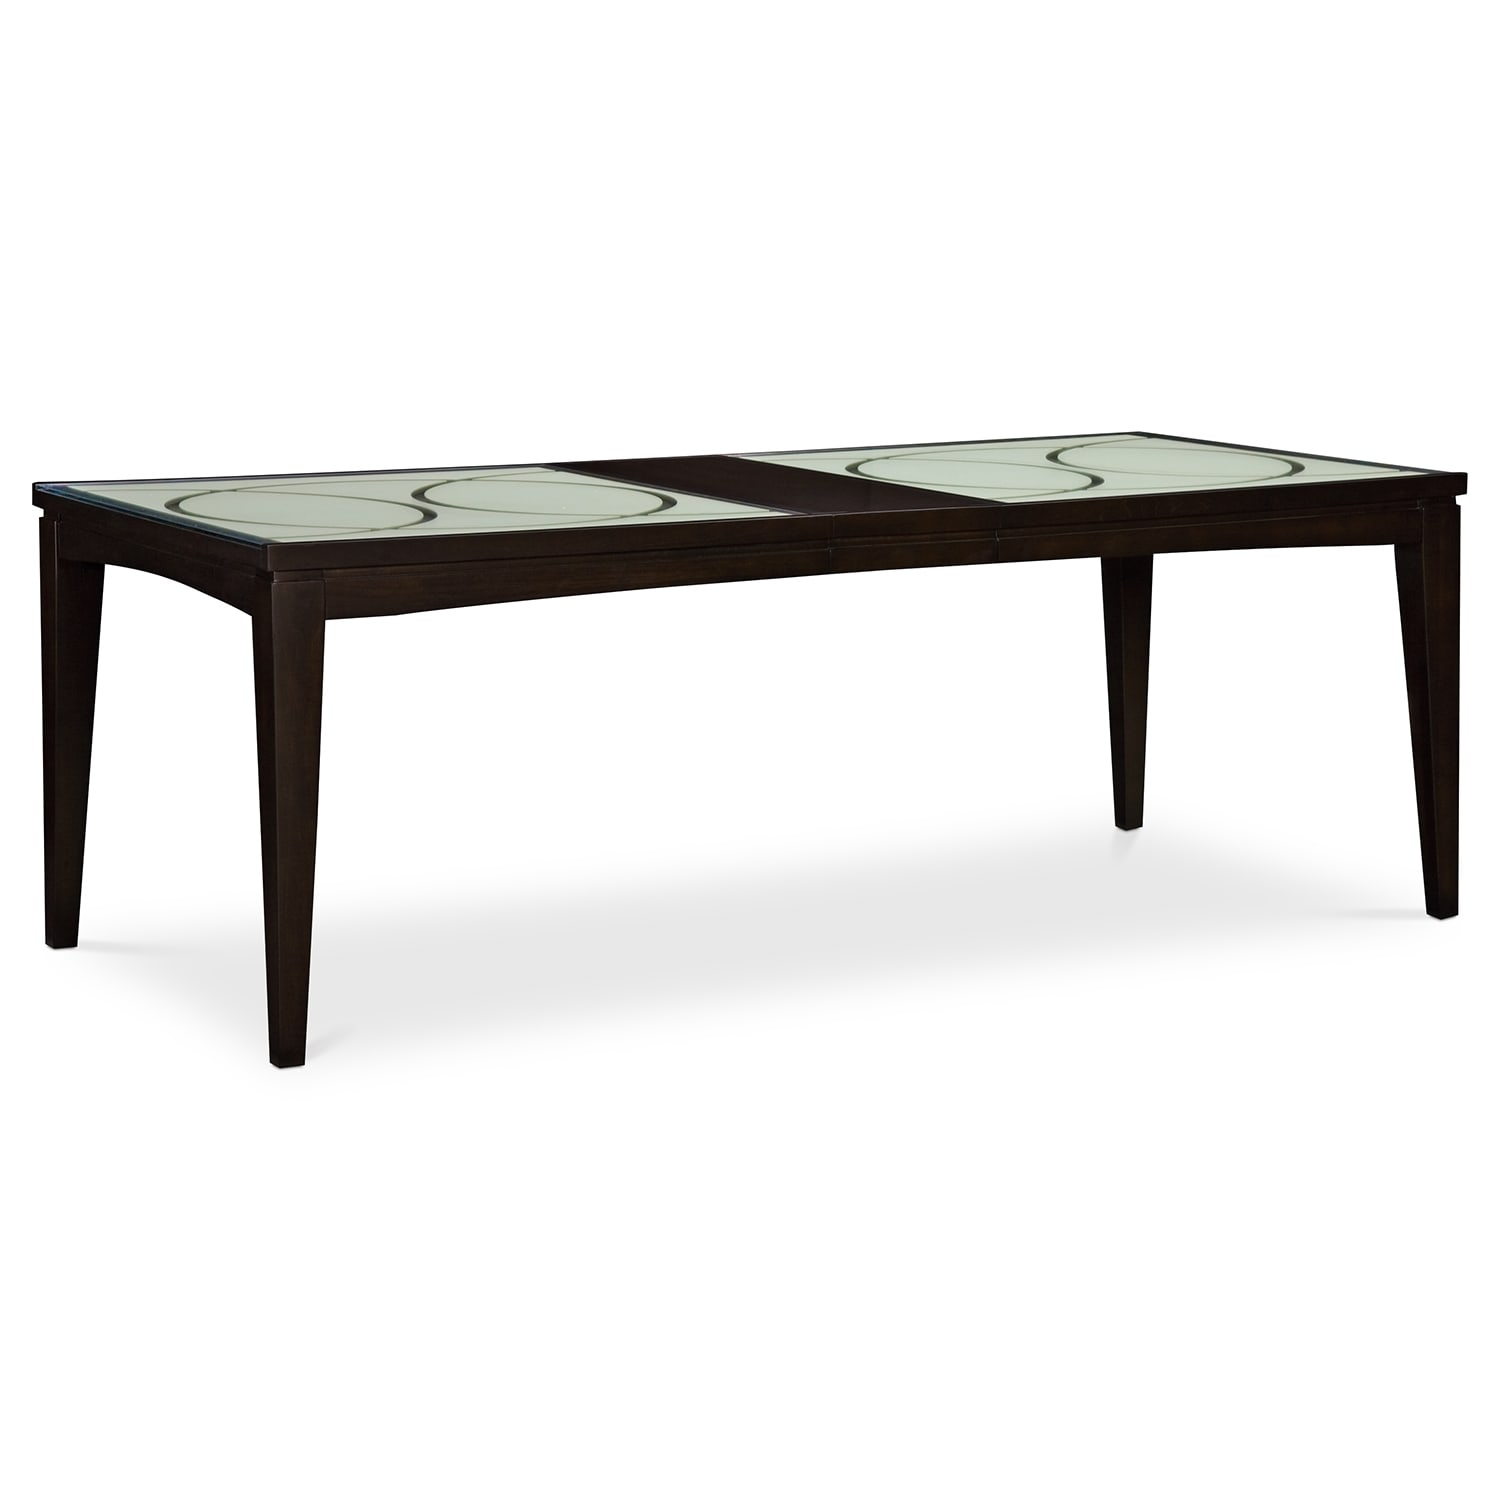 Cosmo Dining Table - Merlot